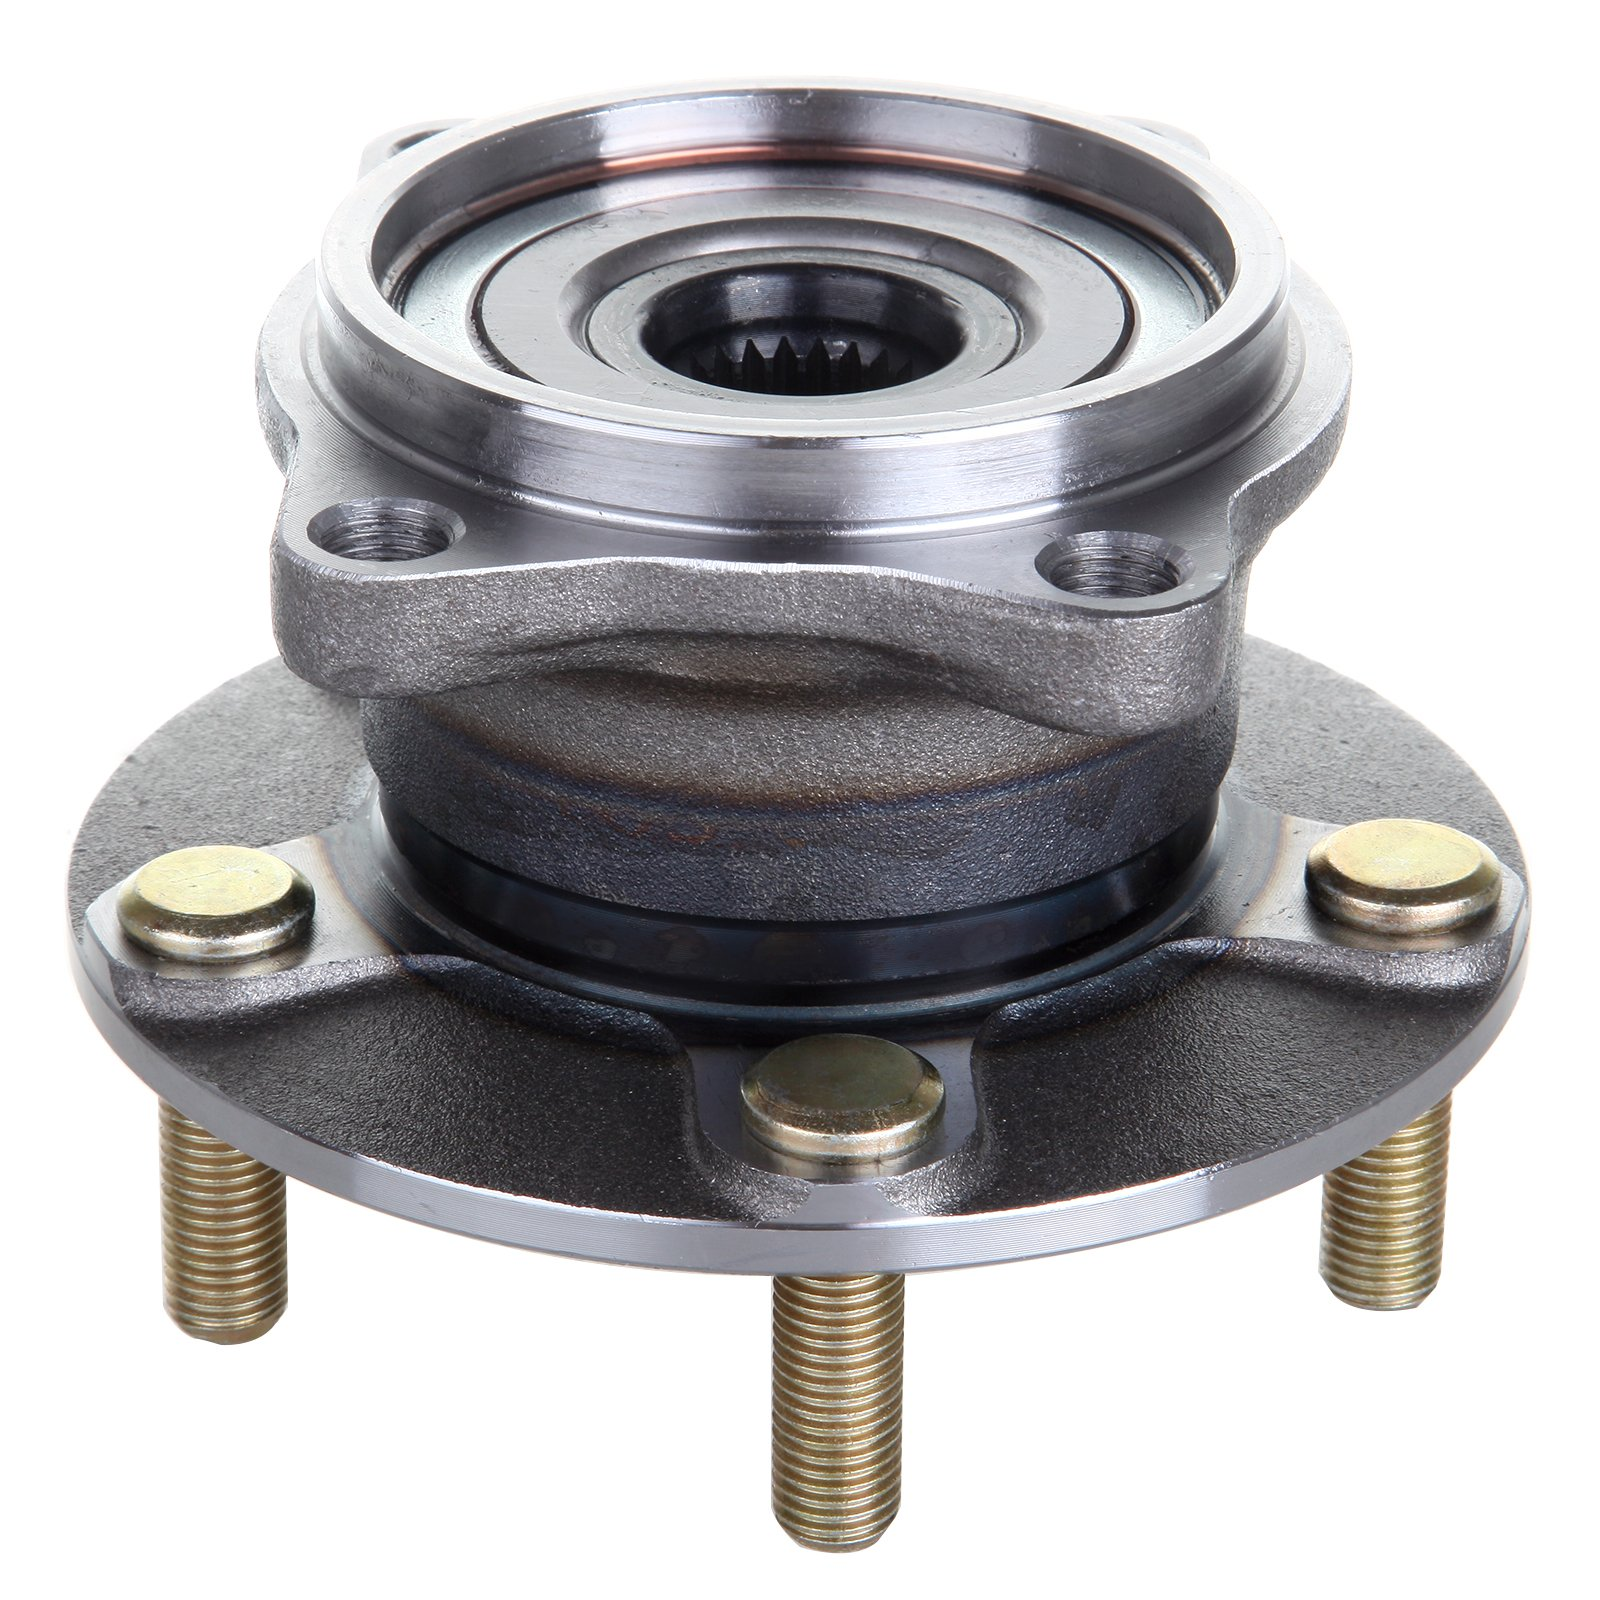 SCITOO 512291 Rear Wheel Hub Bearing Assembly fit 2004 2005 2006 2007 2008 Mitsubishi Endeavor 5 Lugs